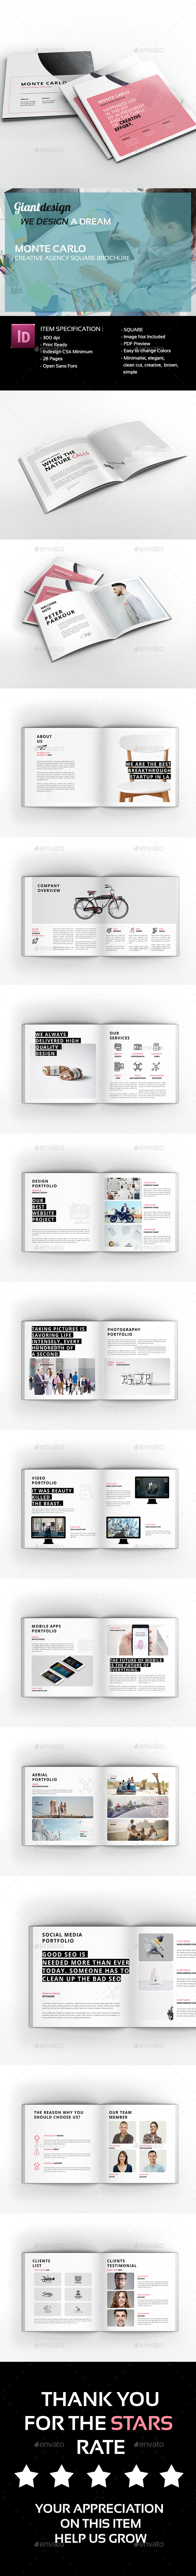 GraphicRiver Monte Carlo Creative Agency Brochure 21112201